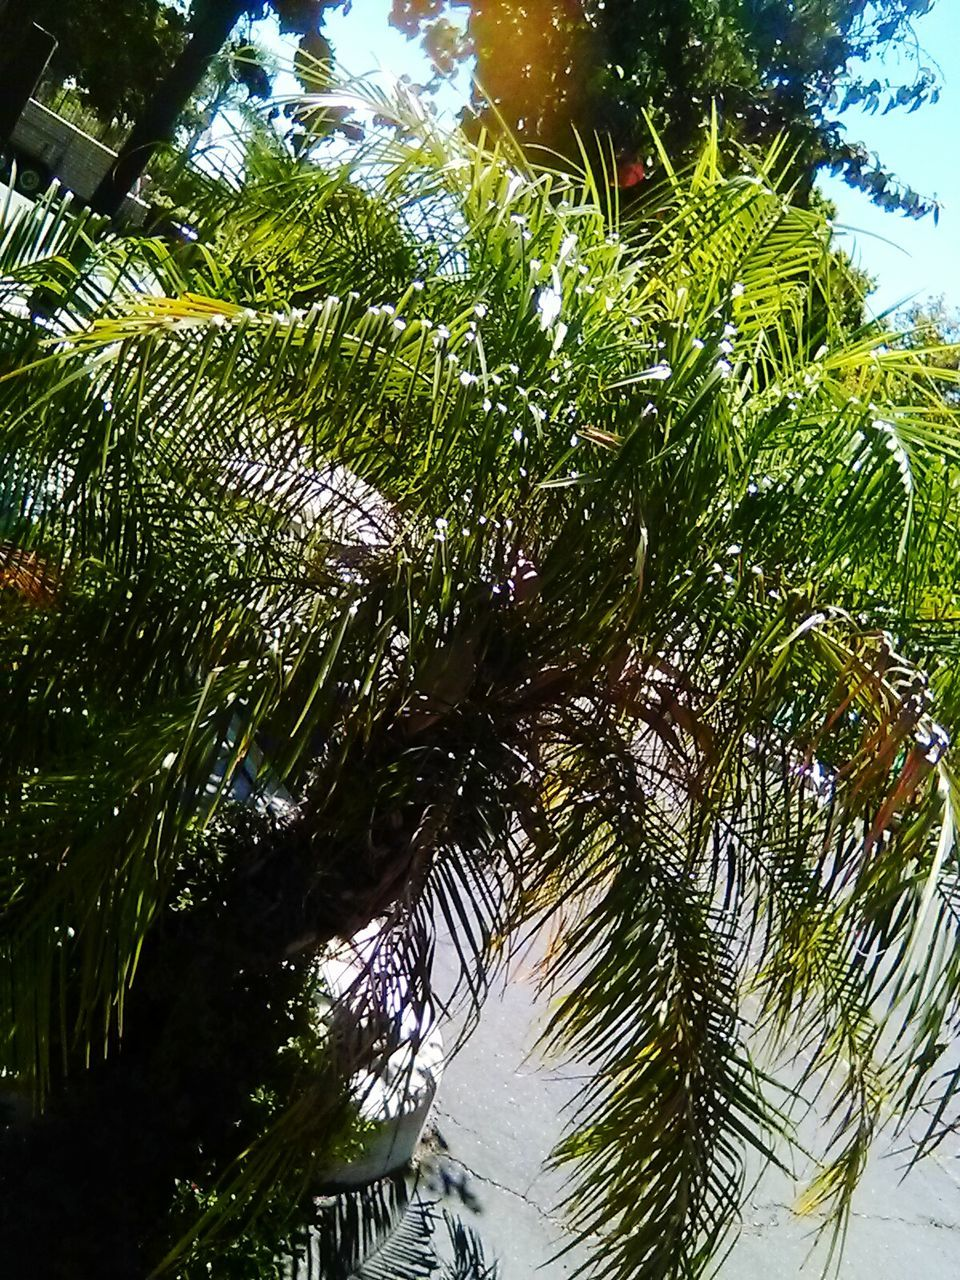 tree, low angle view, growth, nature, palm tree, day, no people, beauty in nature, outdoors, sky, close-up